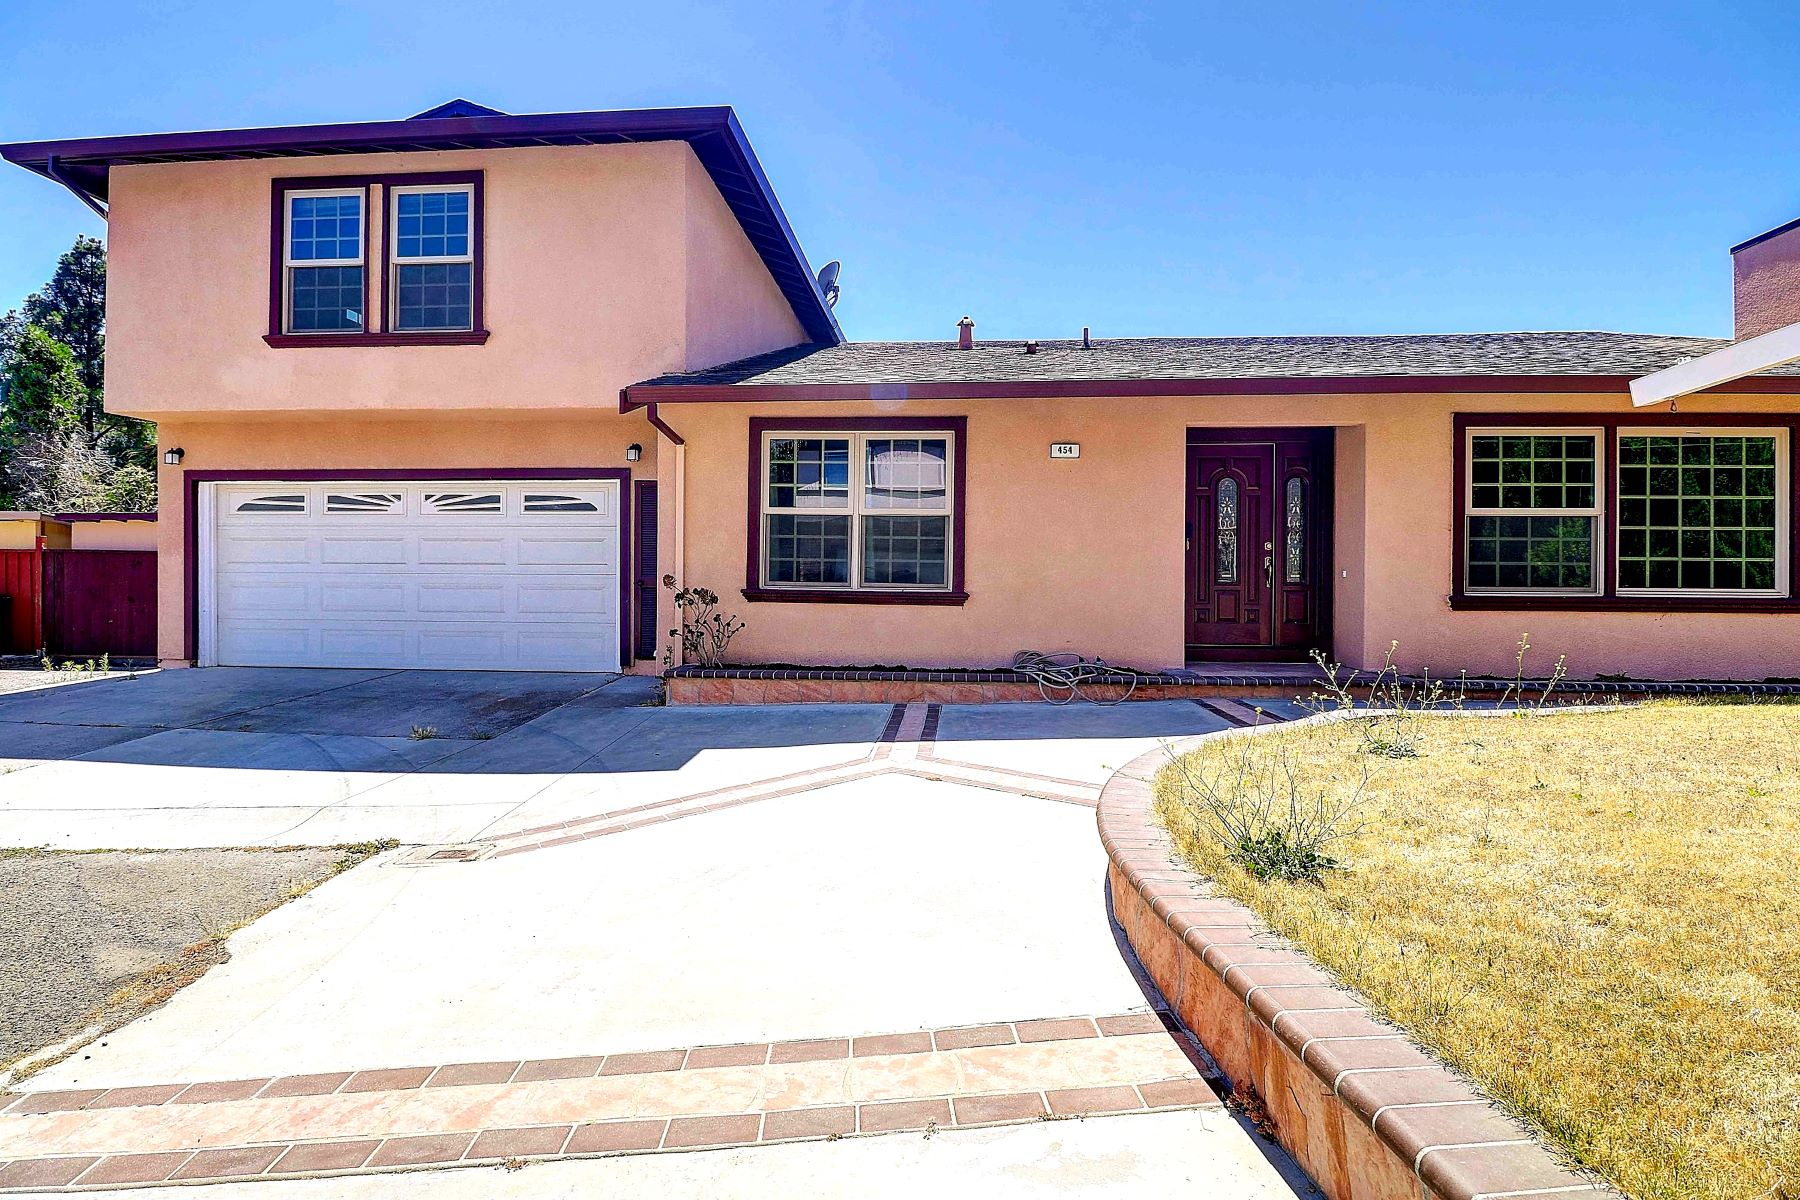 Single Family Homes for Sale at Seven Hills Remodeled Tri-Level With Views 454 Appian Way Union City, California 94587 United States